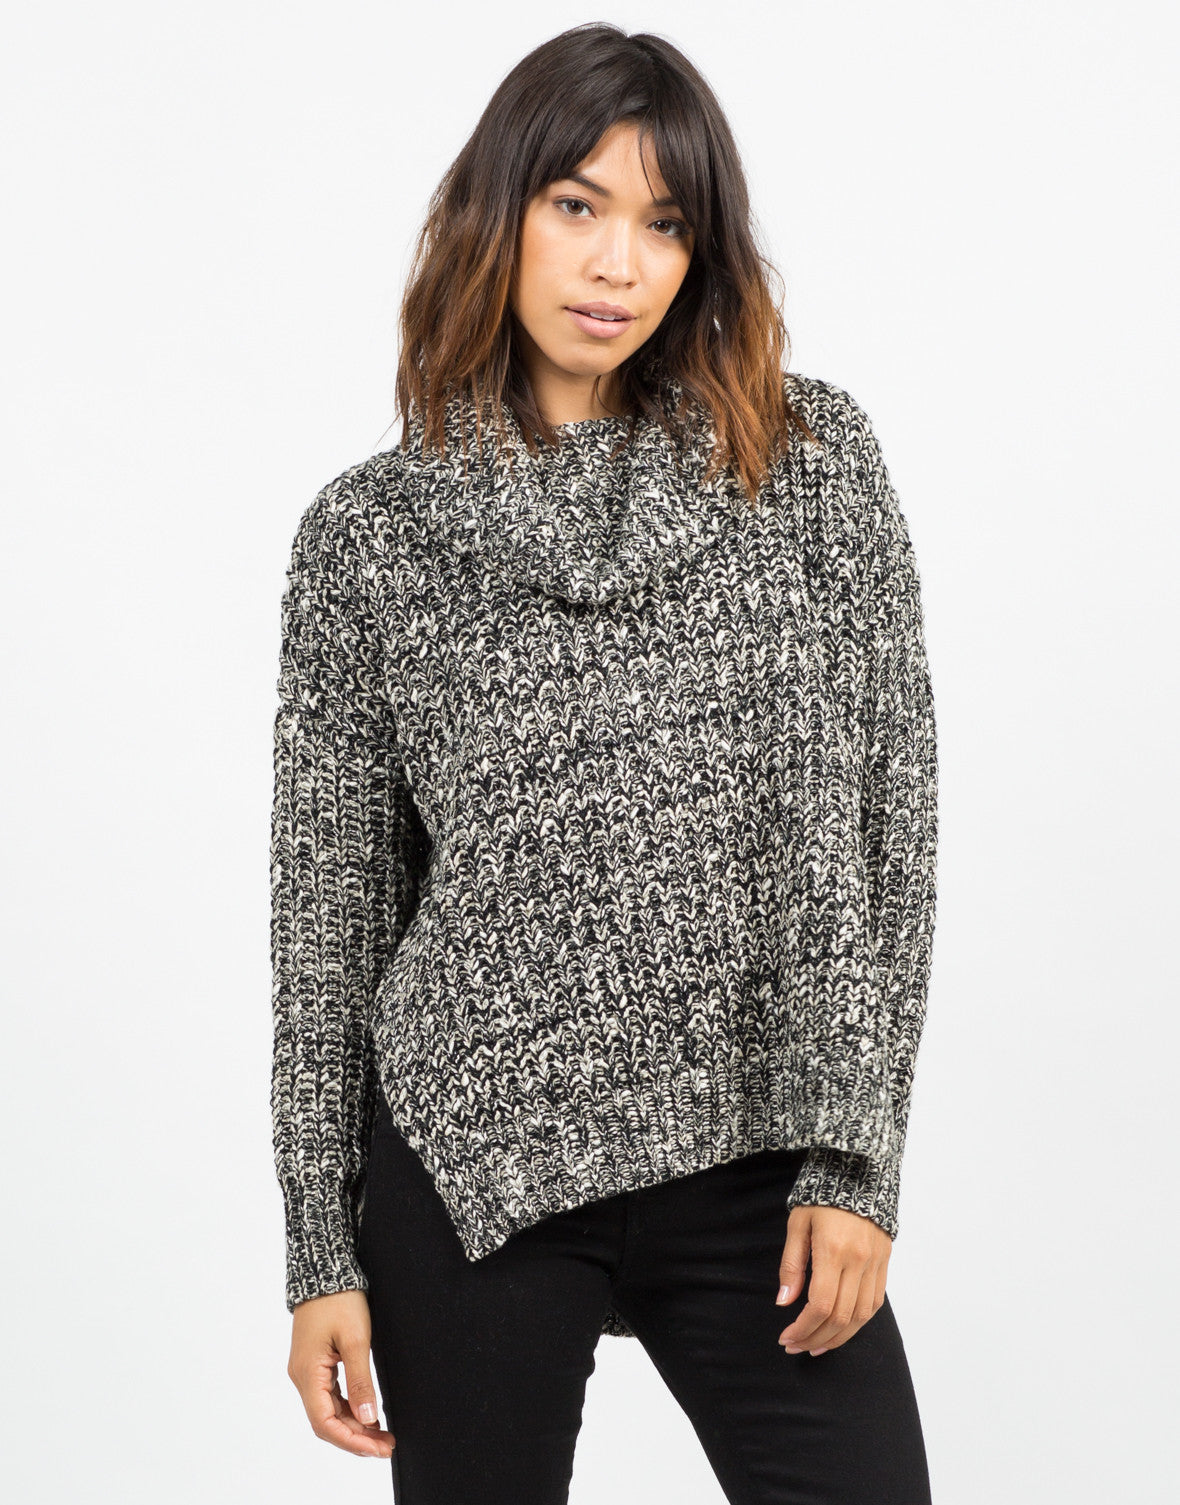 Front View of Thick Mixed Knit Sweater